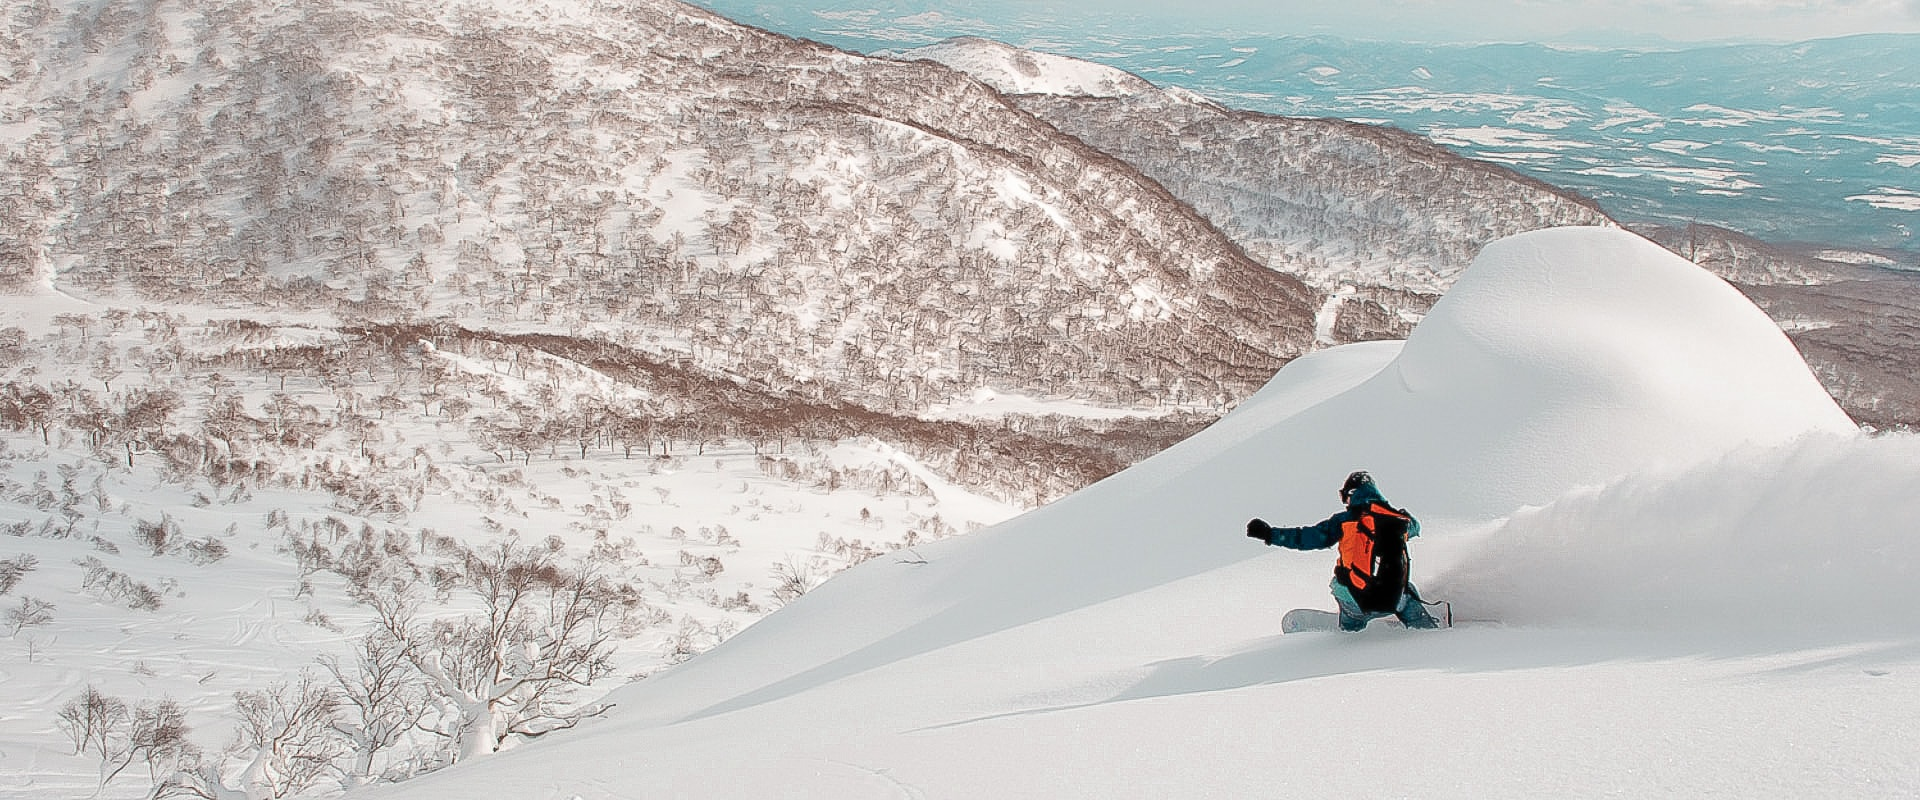 Powder Snowboarder Background First Tours About Us